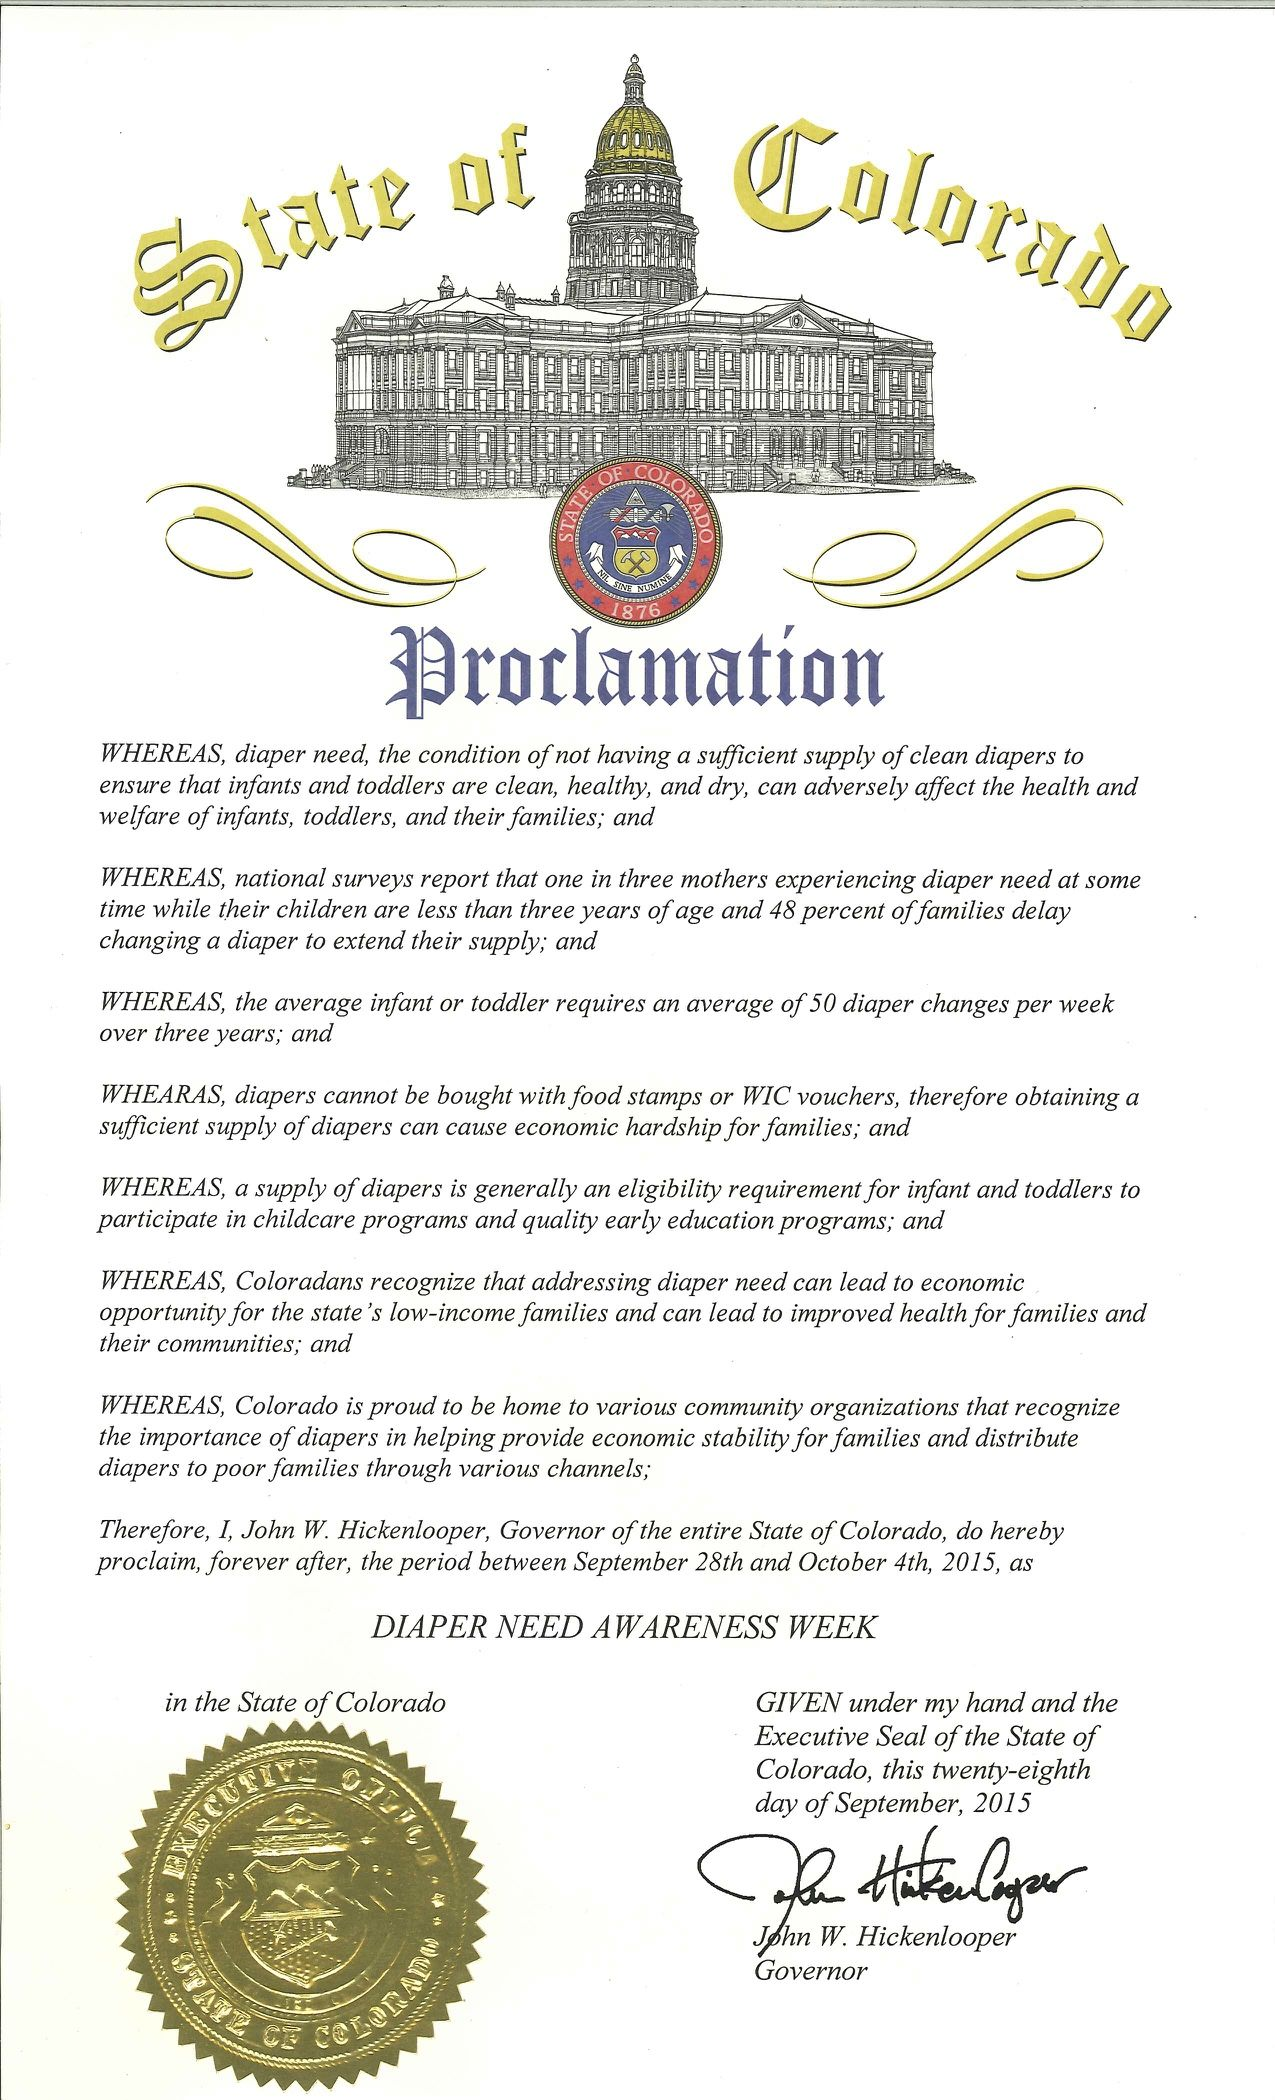 Colorado Governor John Hickenlooper's proclamation recognizing Diaper Need Awareness Week (Sept. 28 - Oct. 4, 2015) #DiaperNeed www.diaperneed.org